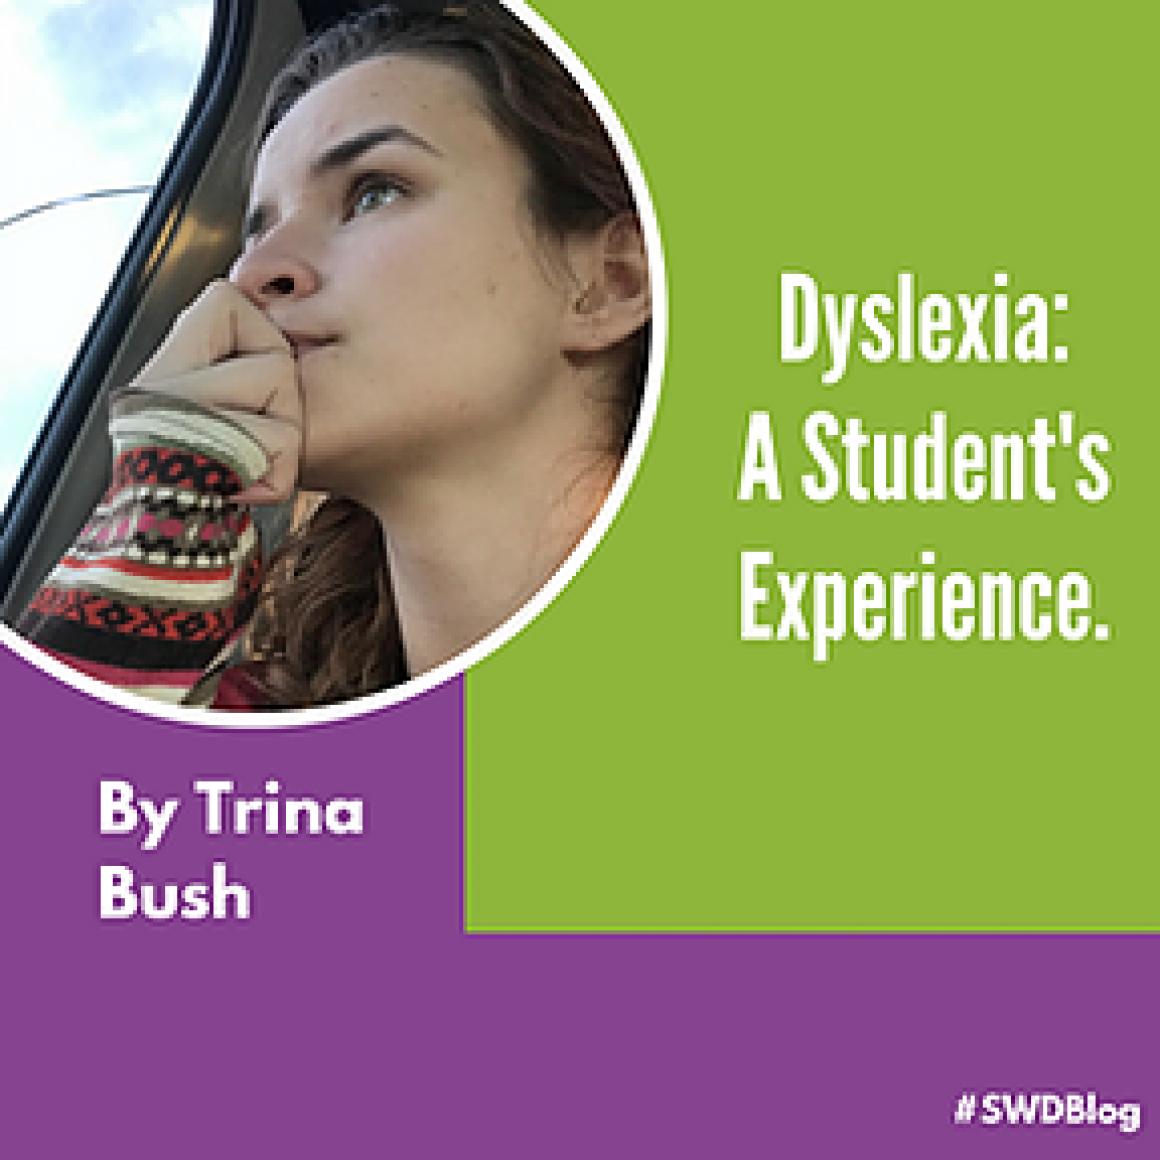 Dyslexia: A Student's Experience.